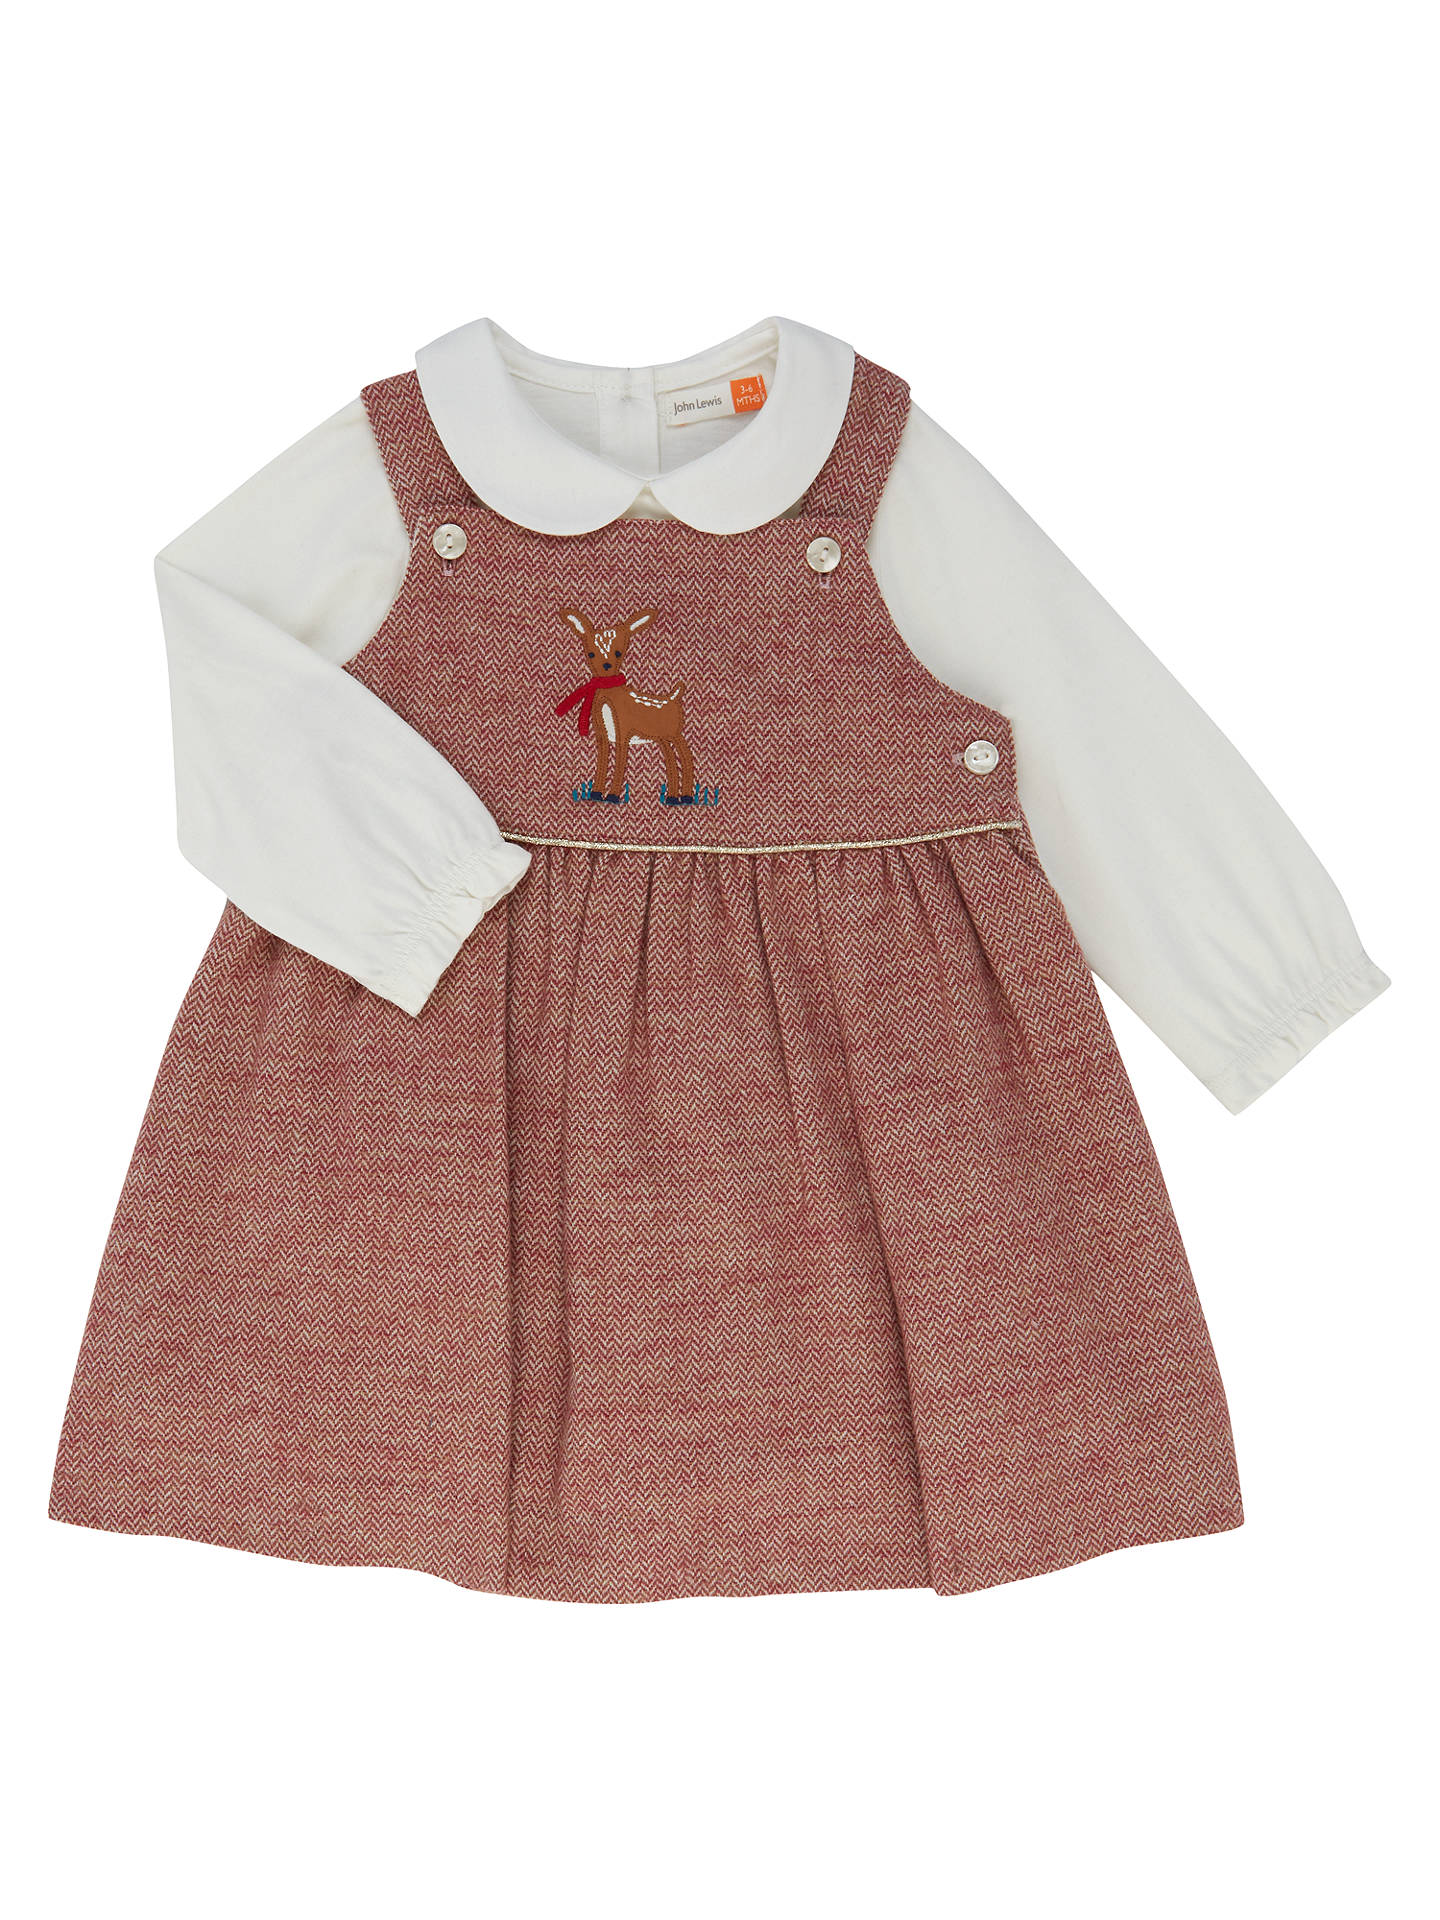 b0f236bd0 John Lewis Baby Herringbone Pinafore Dress and Top Set